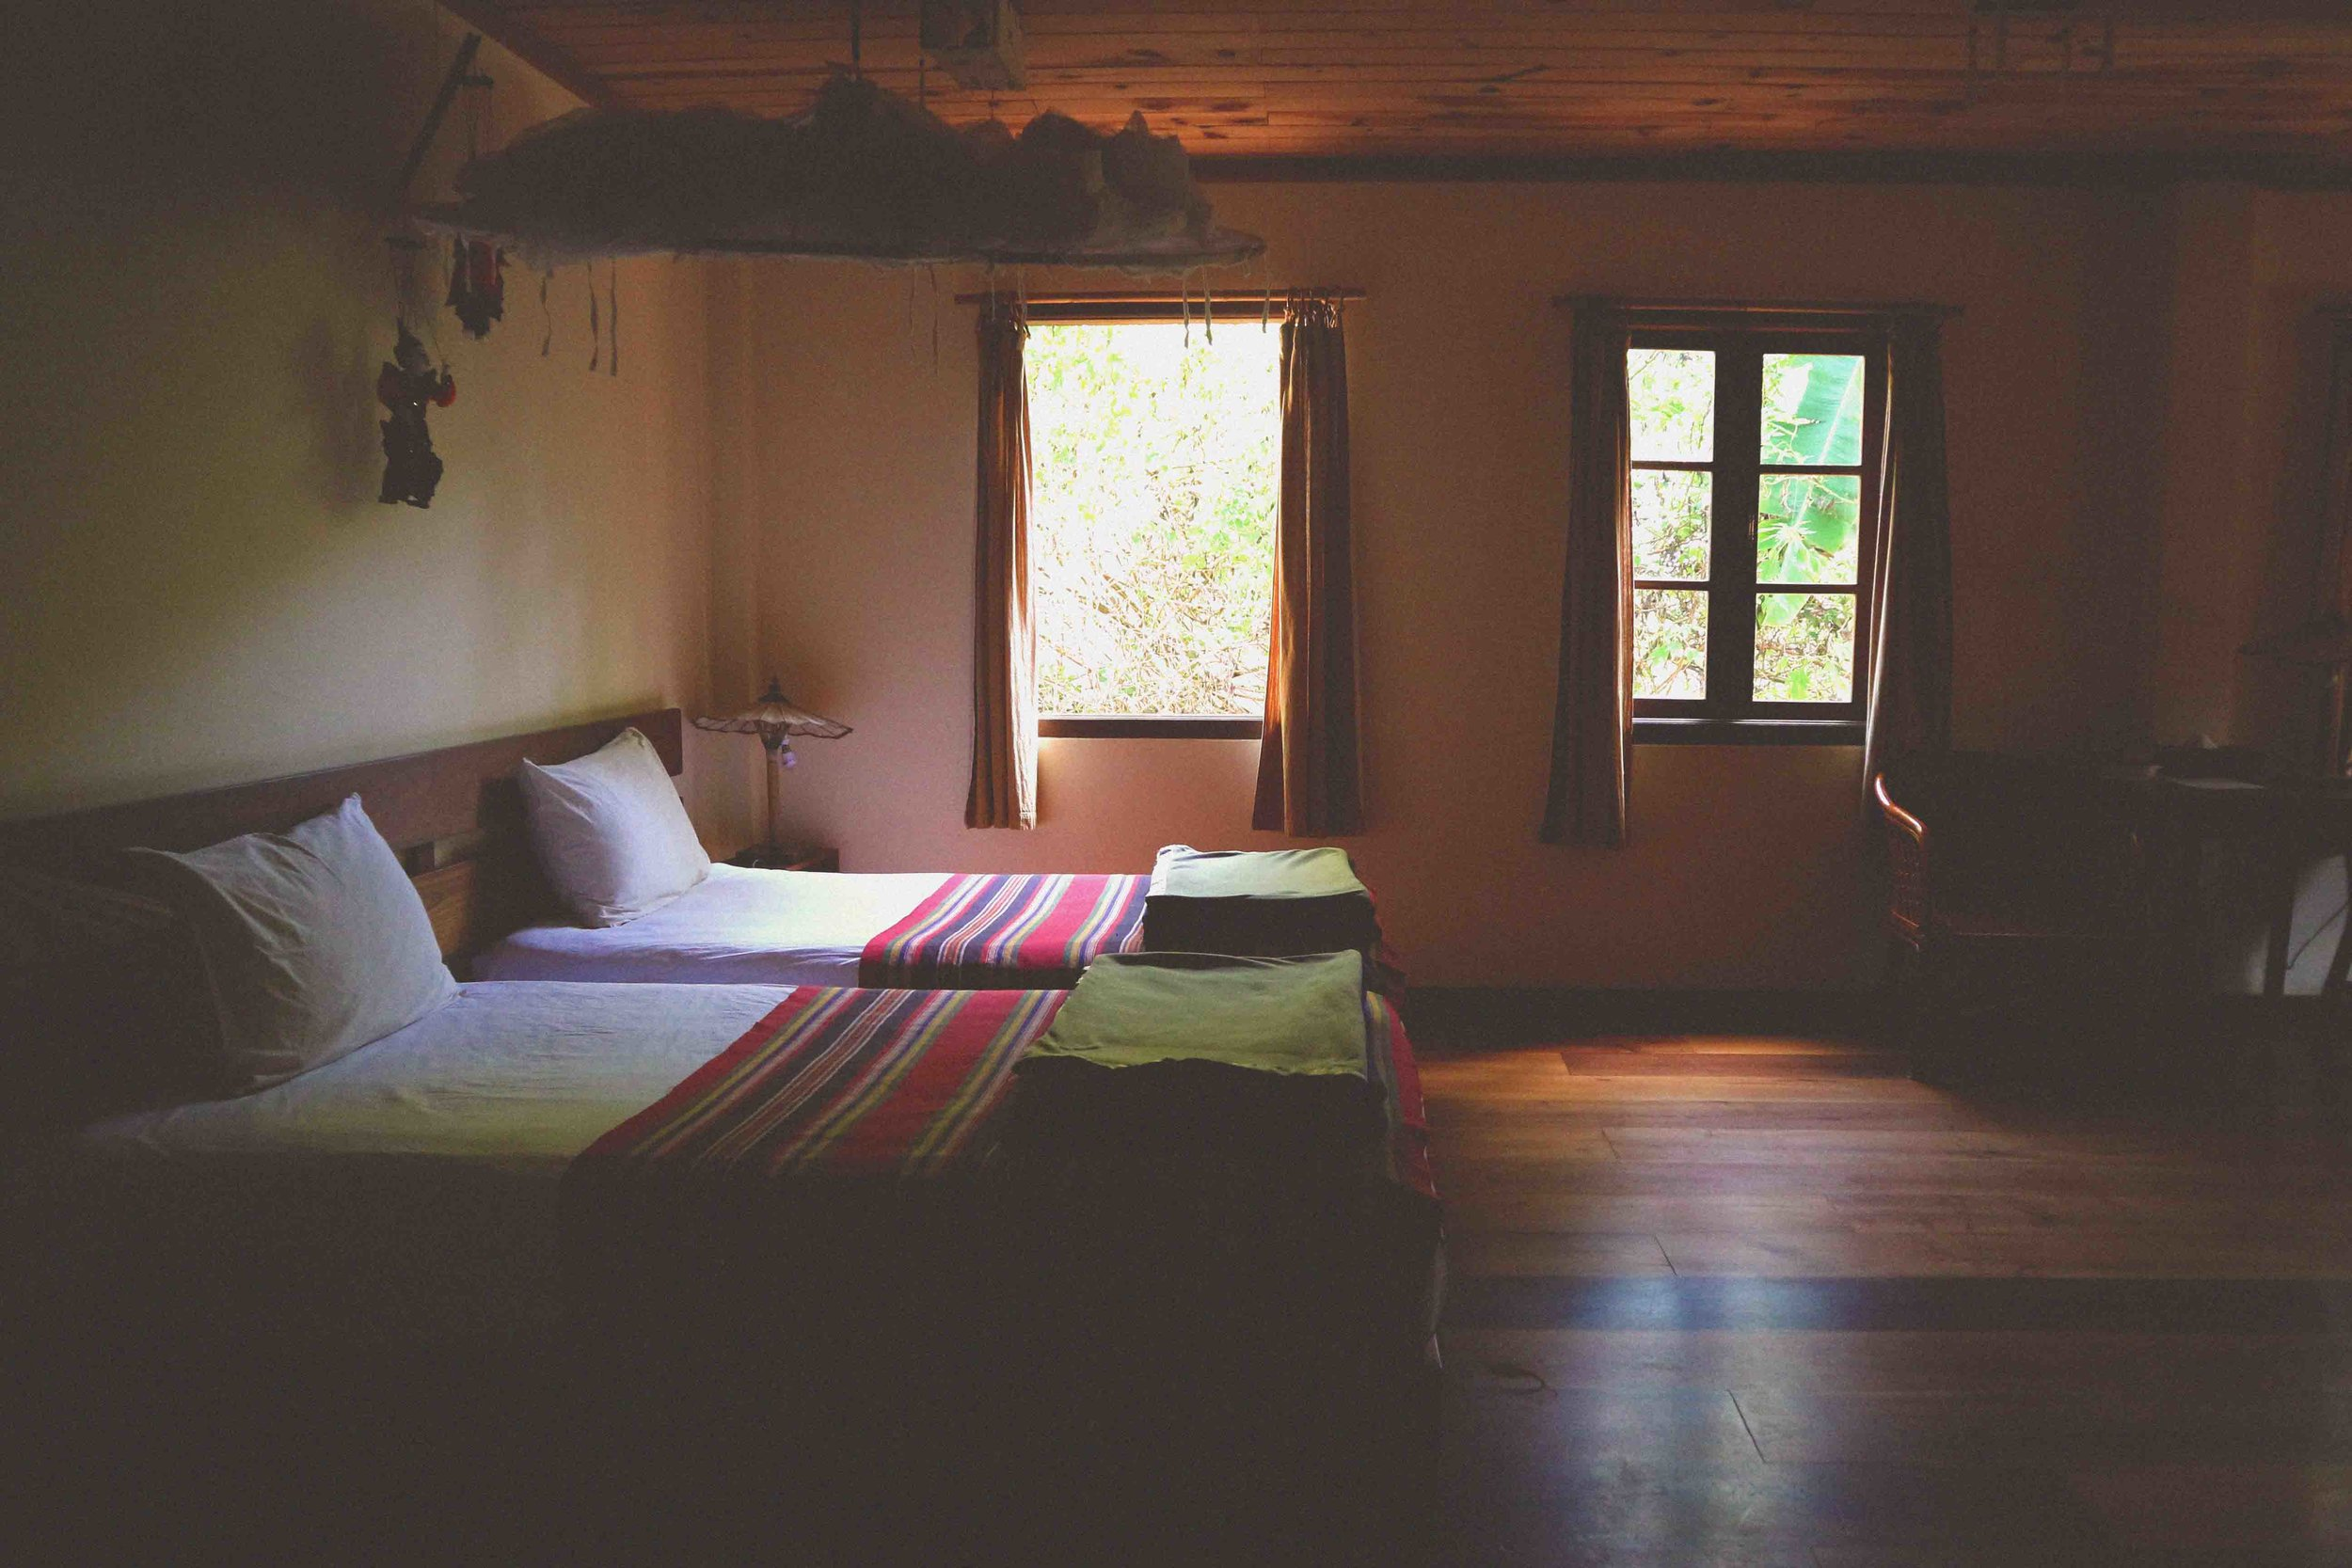 Our beautiful room at Thitaw Lay House